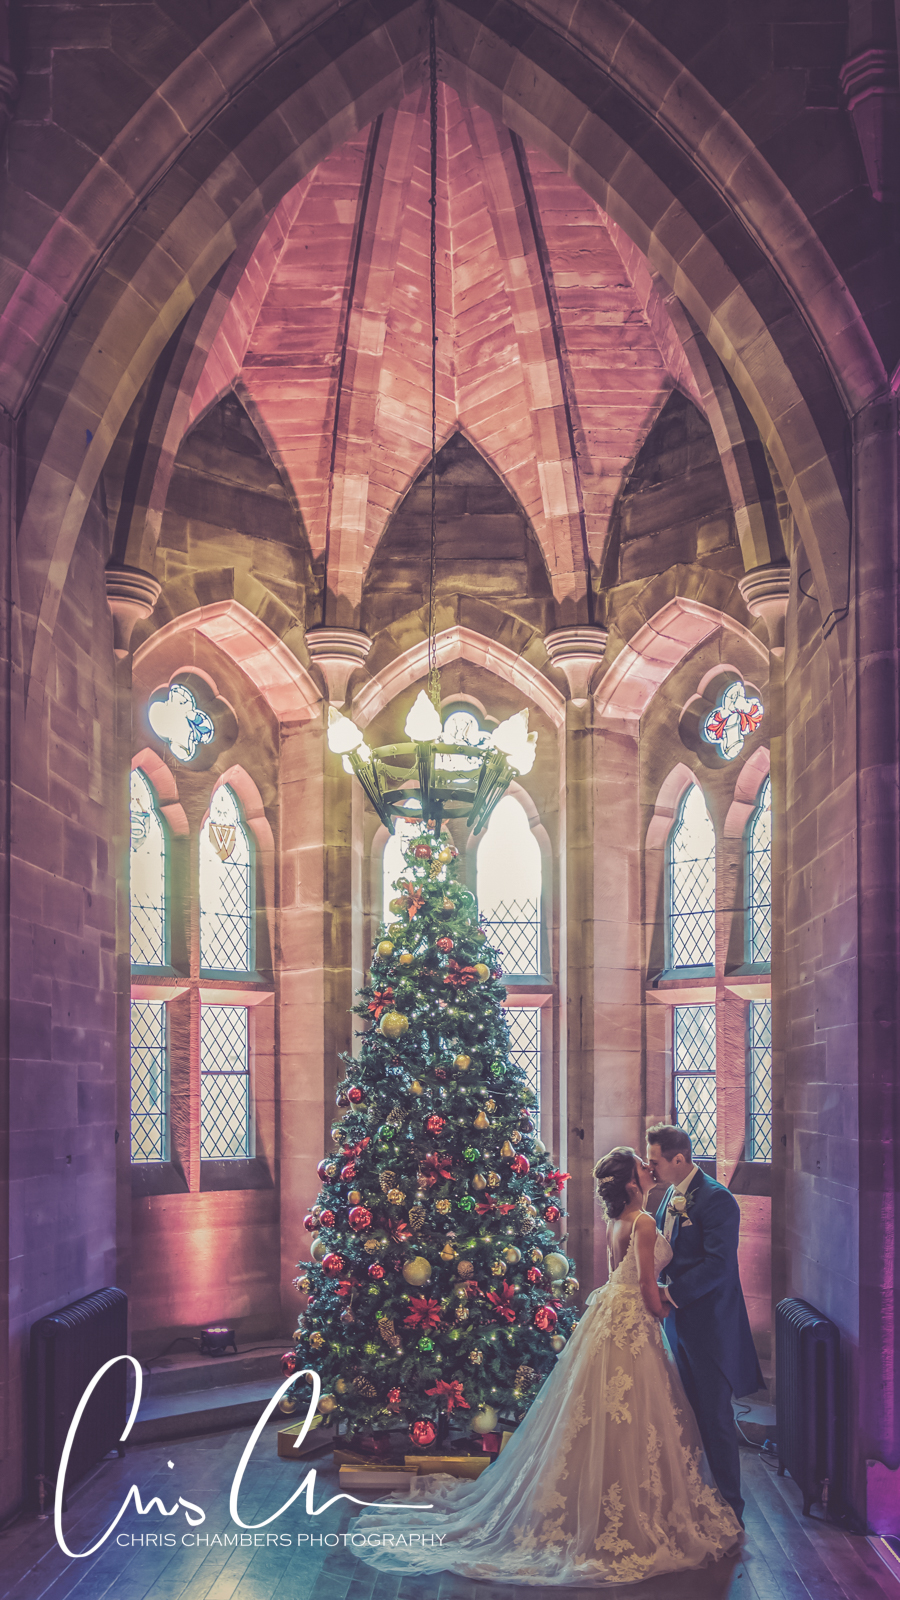 Peckforton Castle wedding photography, Cheshsire wedding venue Peckforton Castle